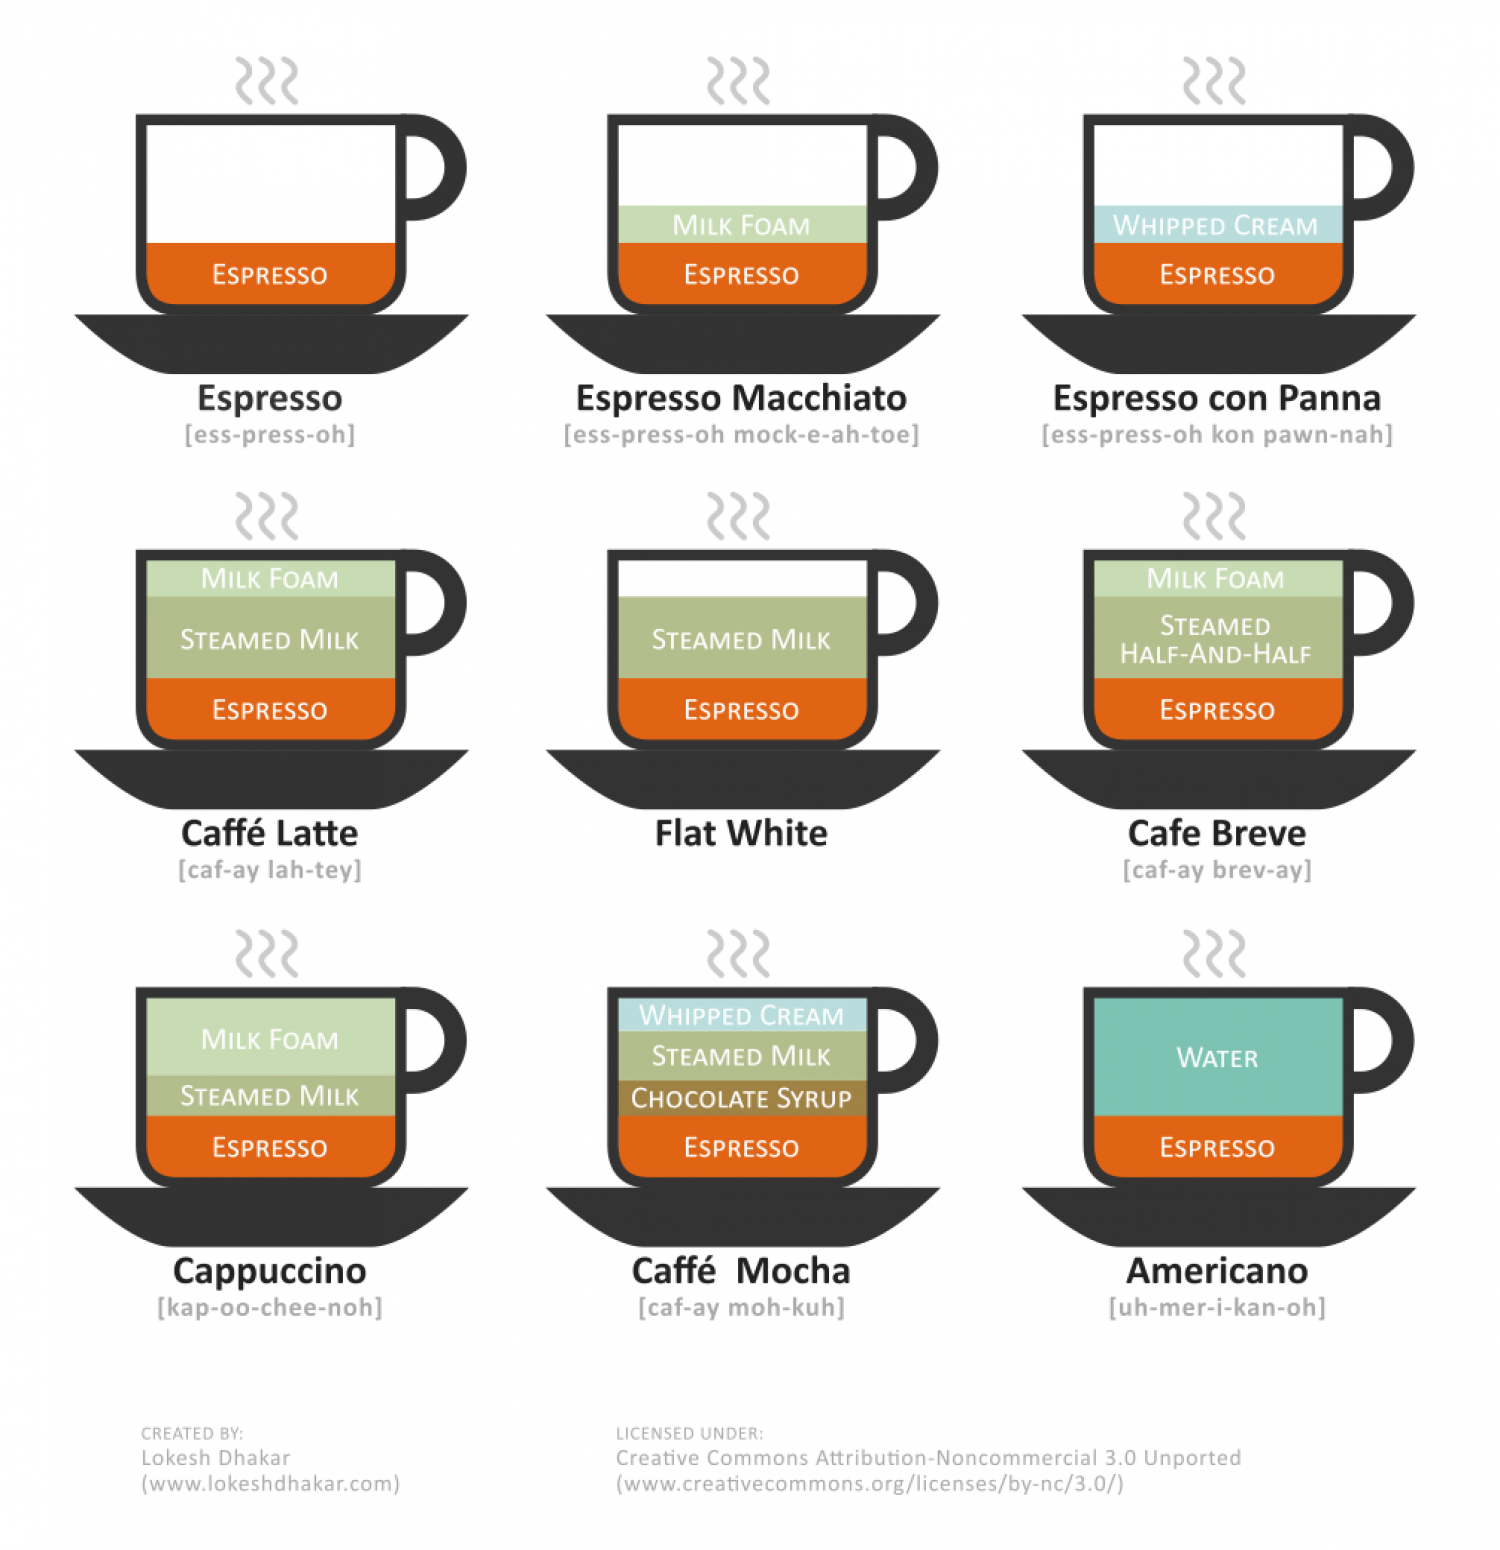 An Illustrated Guide to Coffee Drinks Infographic